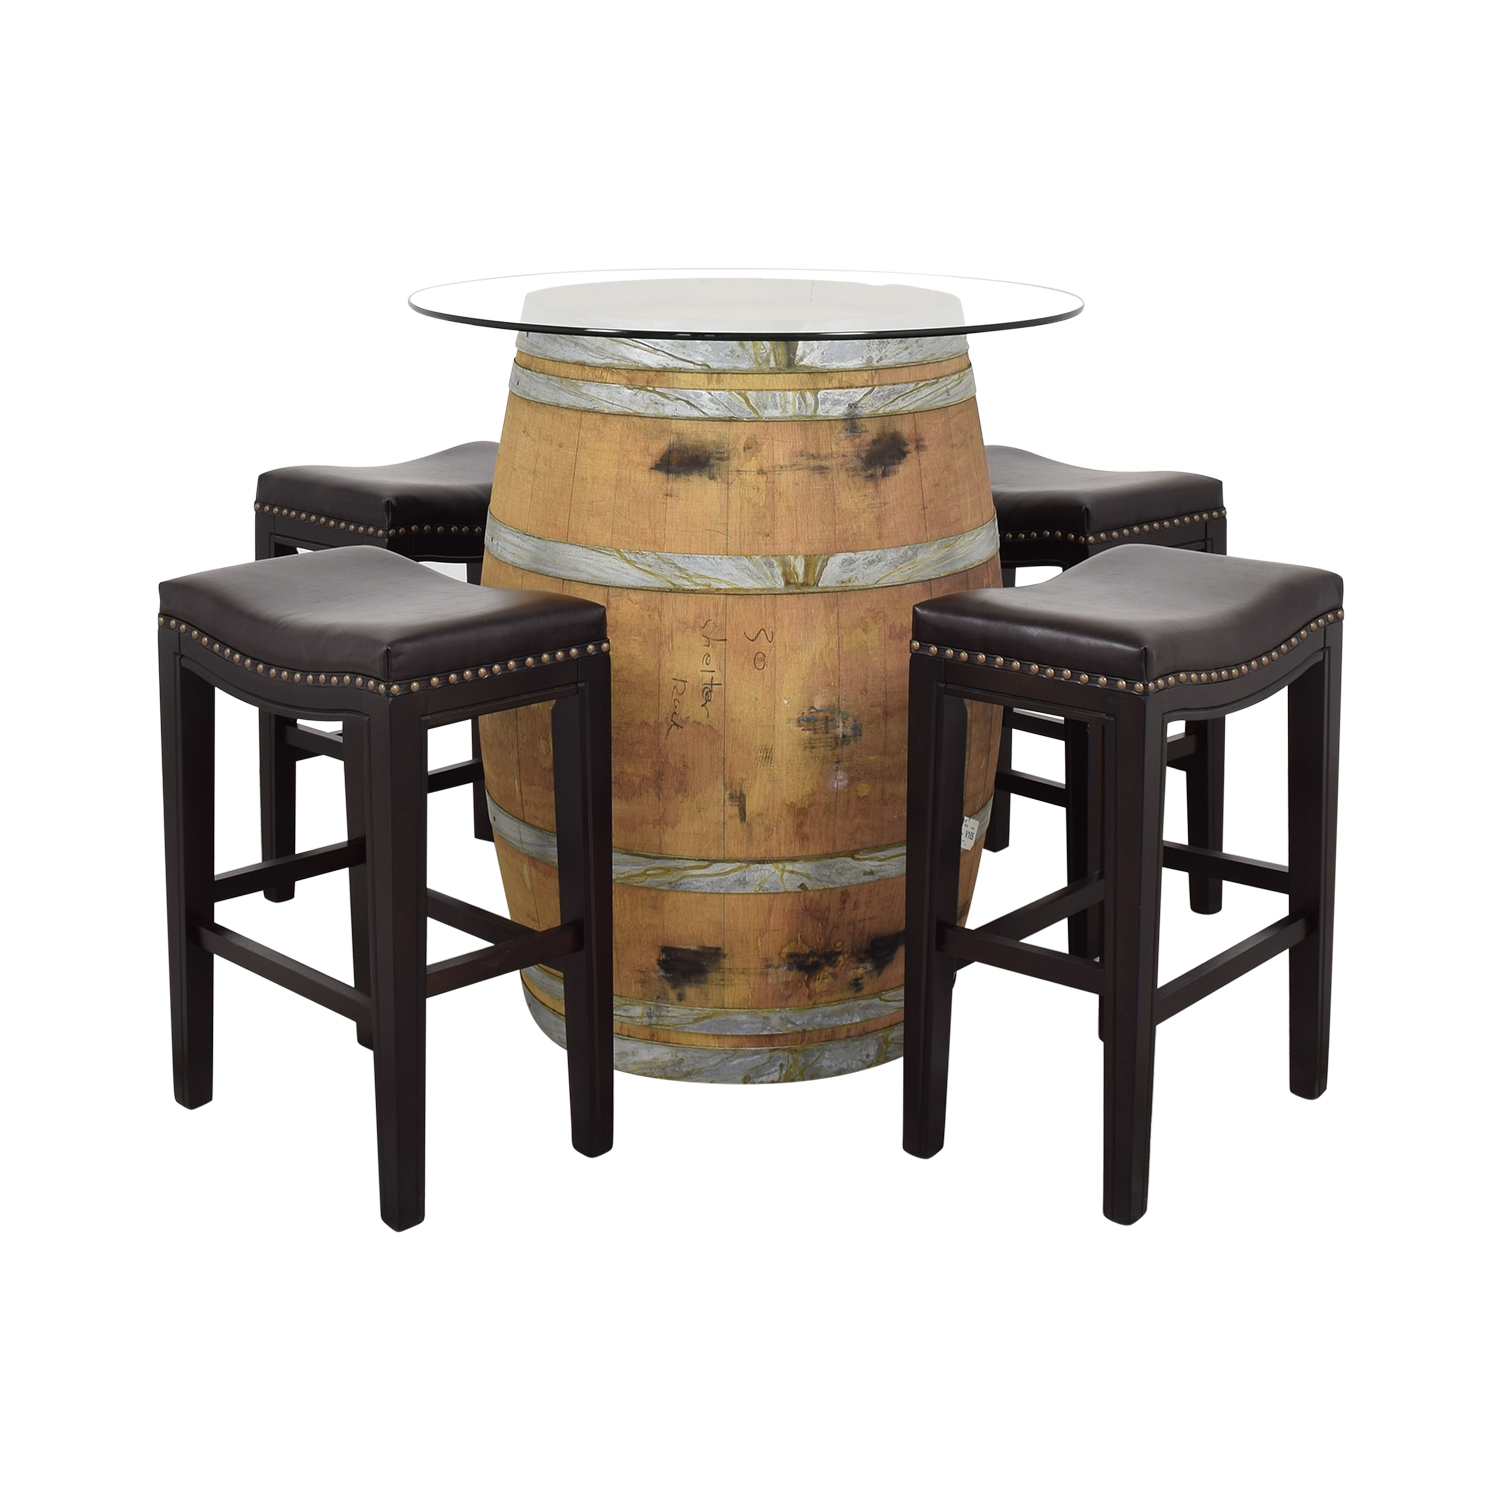 Glass Top Wine Barrel Entertainment Table with Stools Chairs